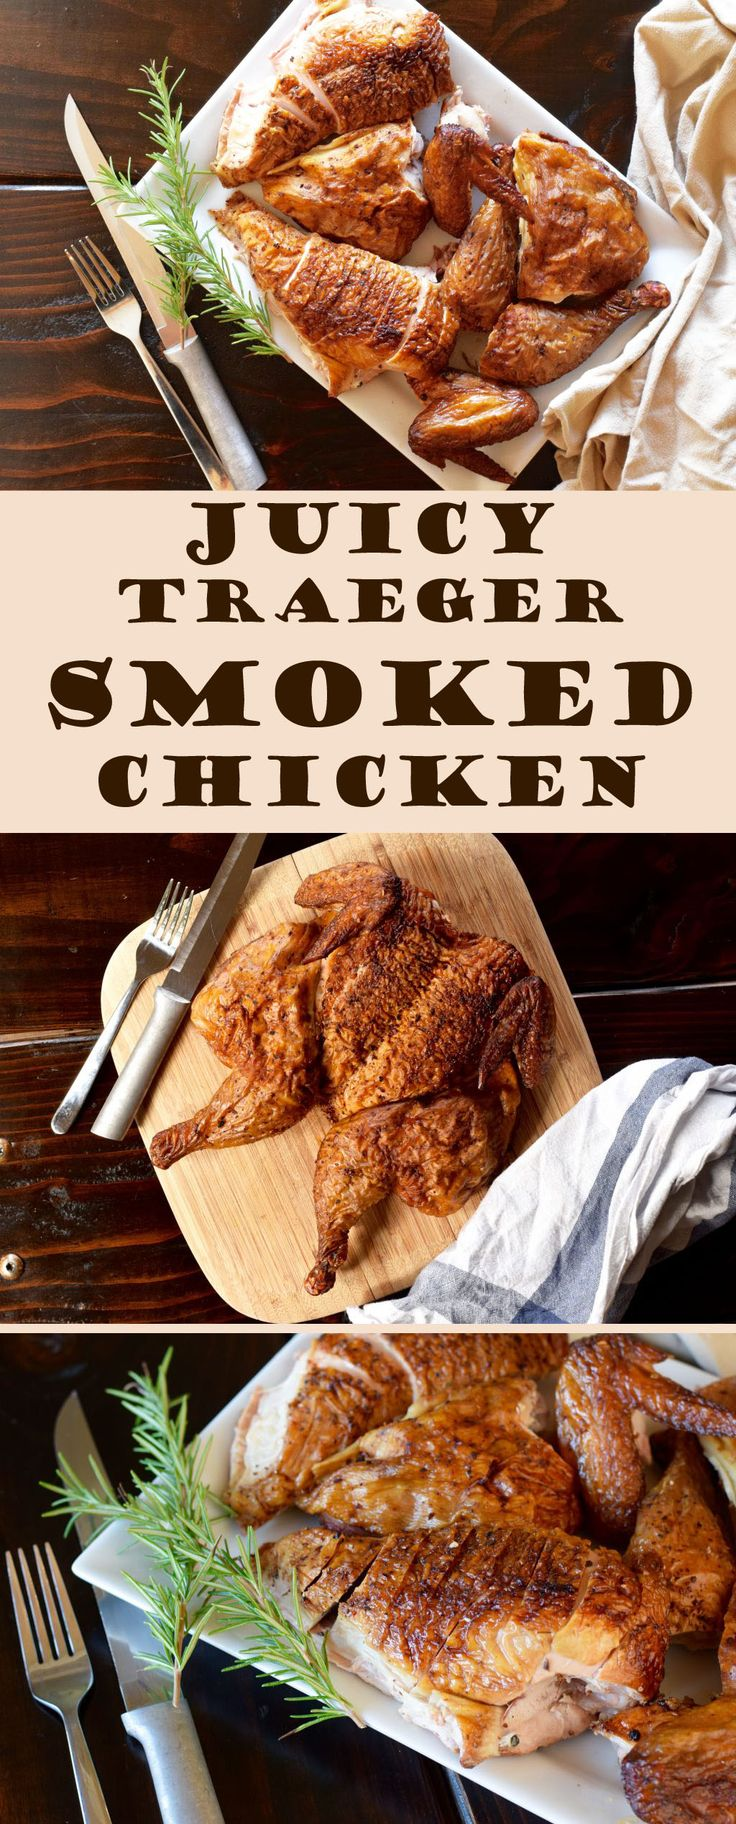 Juicy Traeger Grill Smoked Chicken - Sweet Somethings